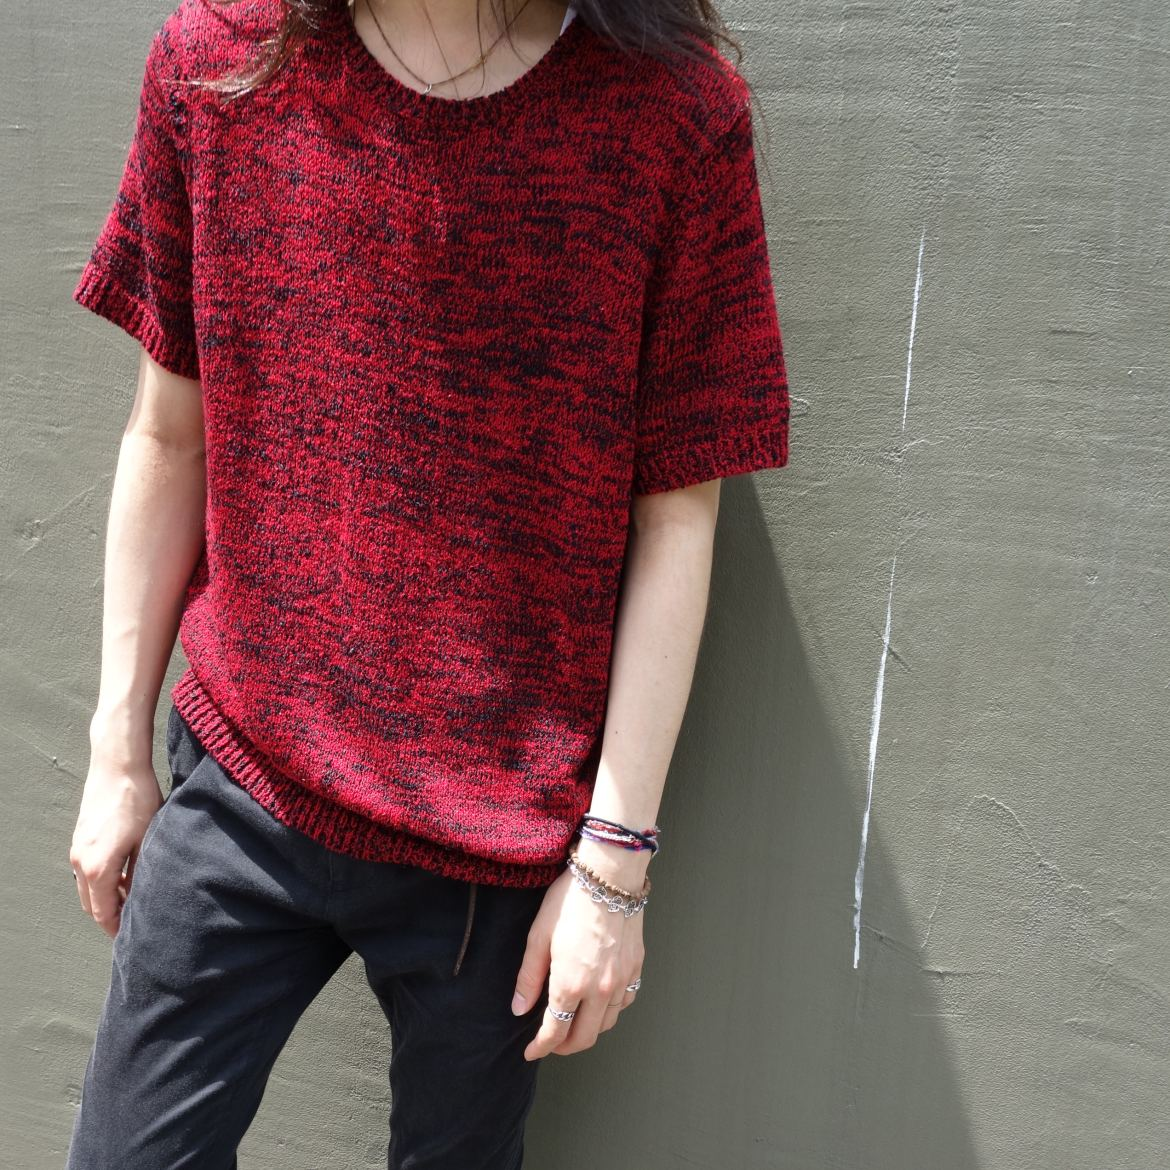 New Arrlvals Knit T-Shirts vintage styling blog